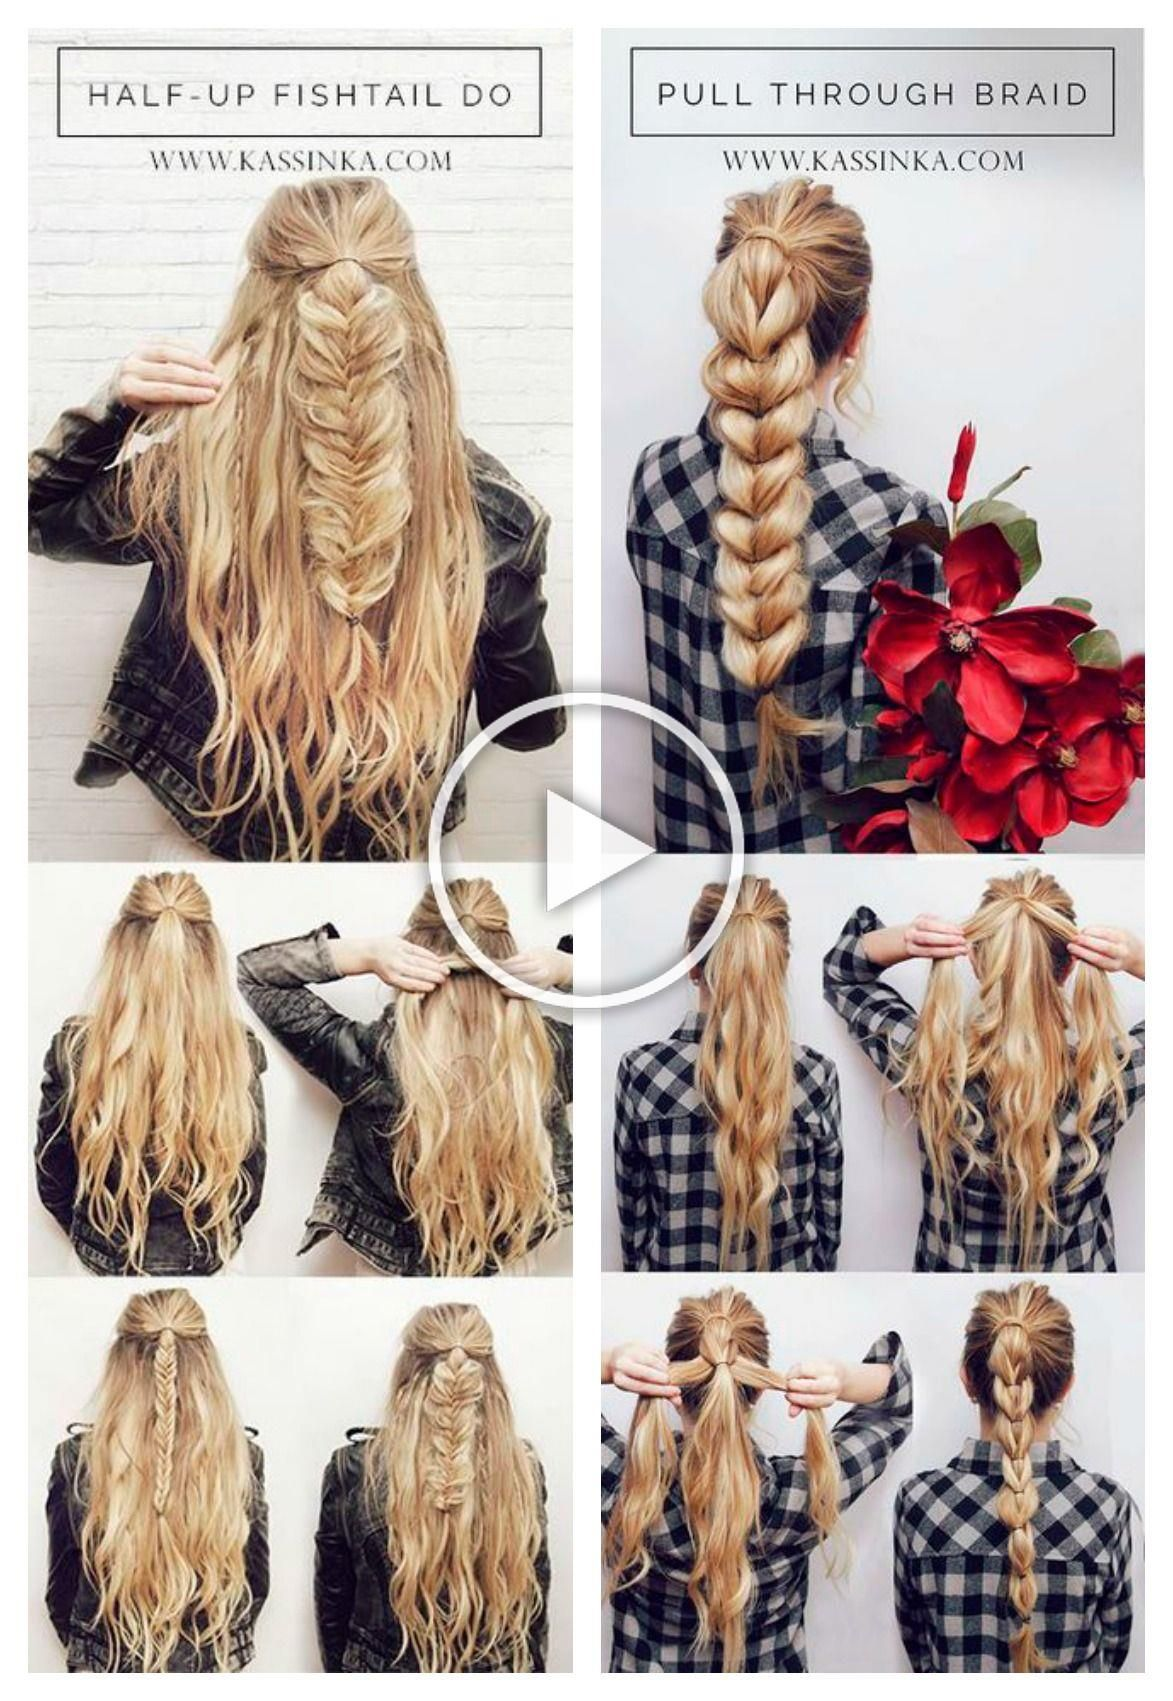 Pin By Emilyreisor On Hair And Beauty In 2020 Braided Hairstyles Long Hair Styles Braids For Long Hair